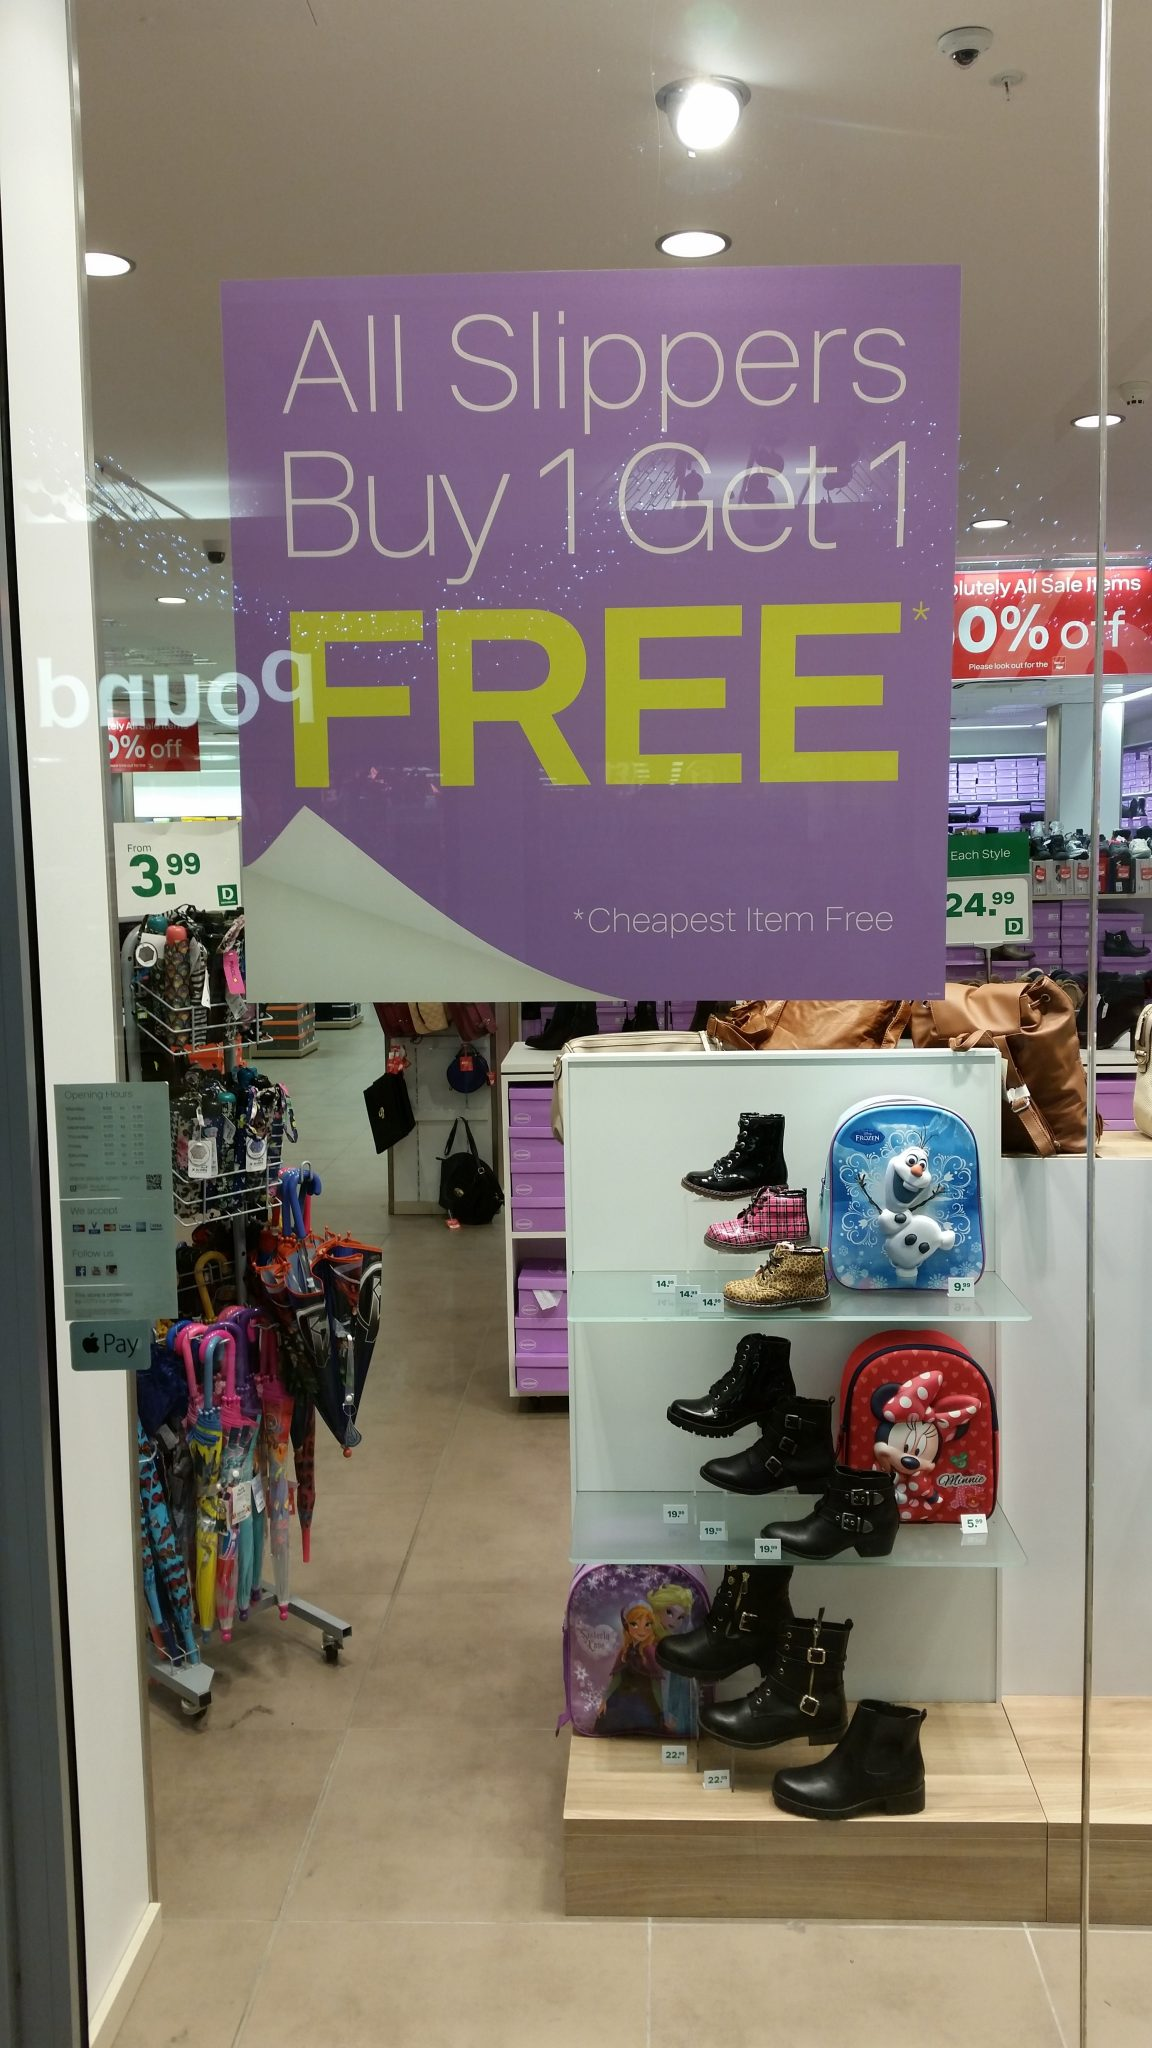 20151219 143701 e1452014922103 - Slippers, Buy one get one free! #slipper #offer #bogof